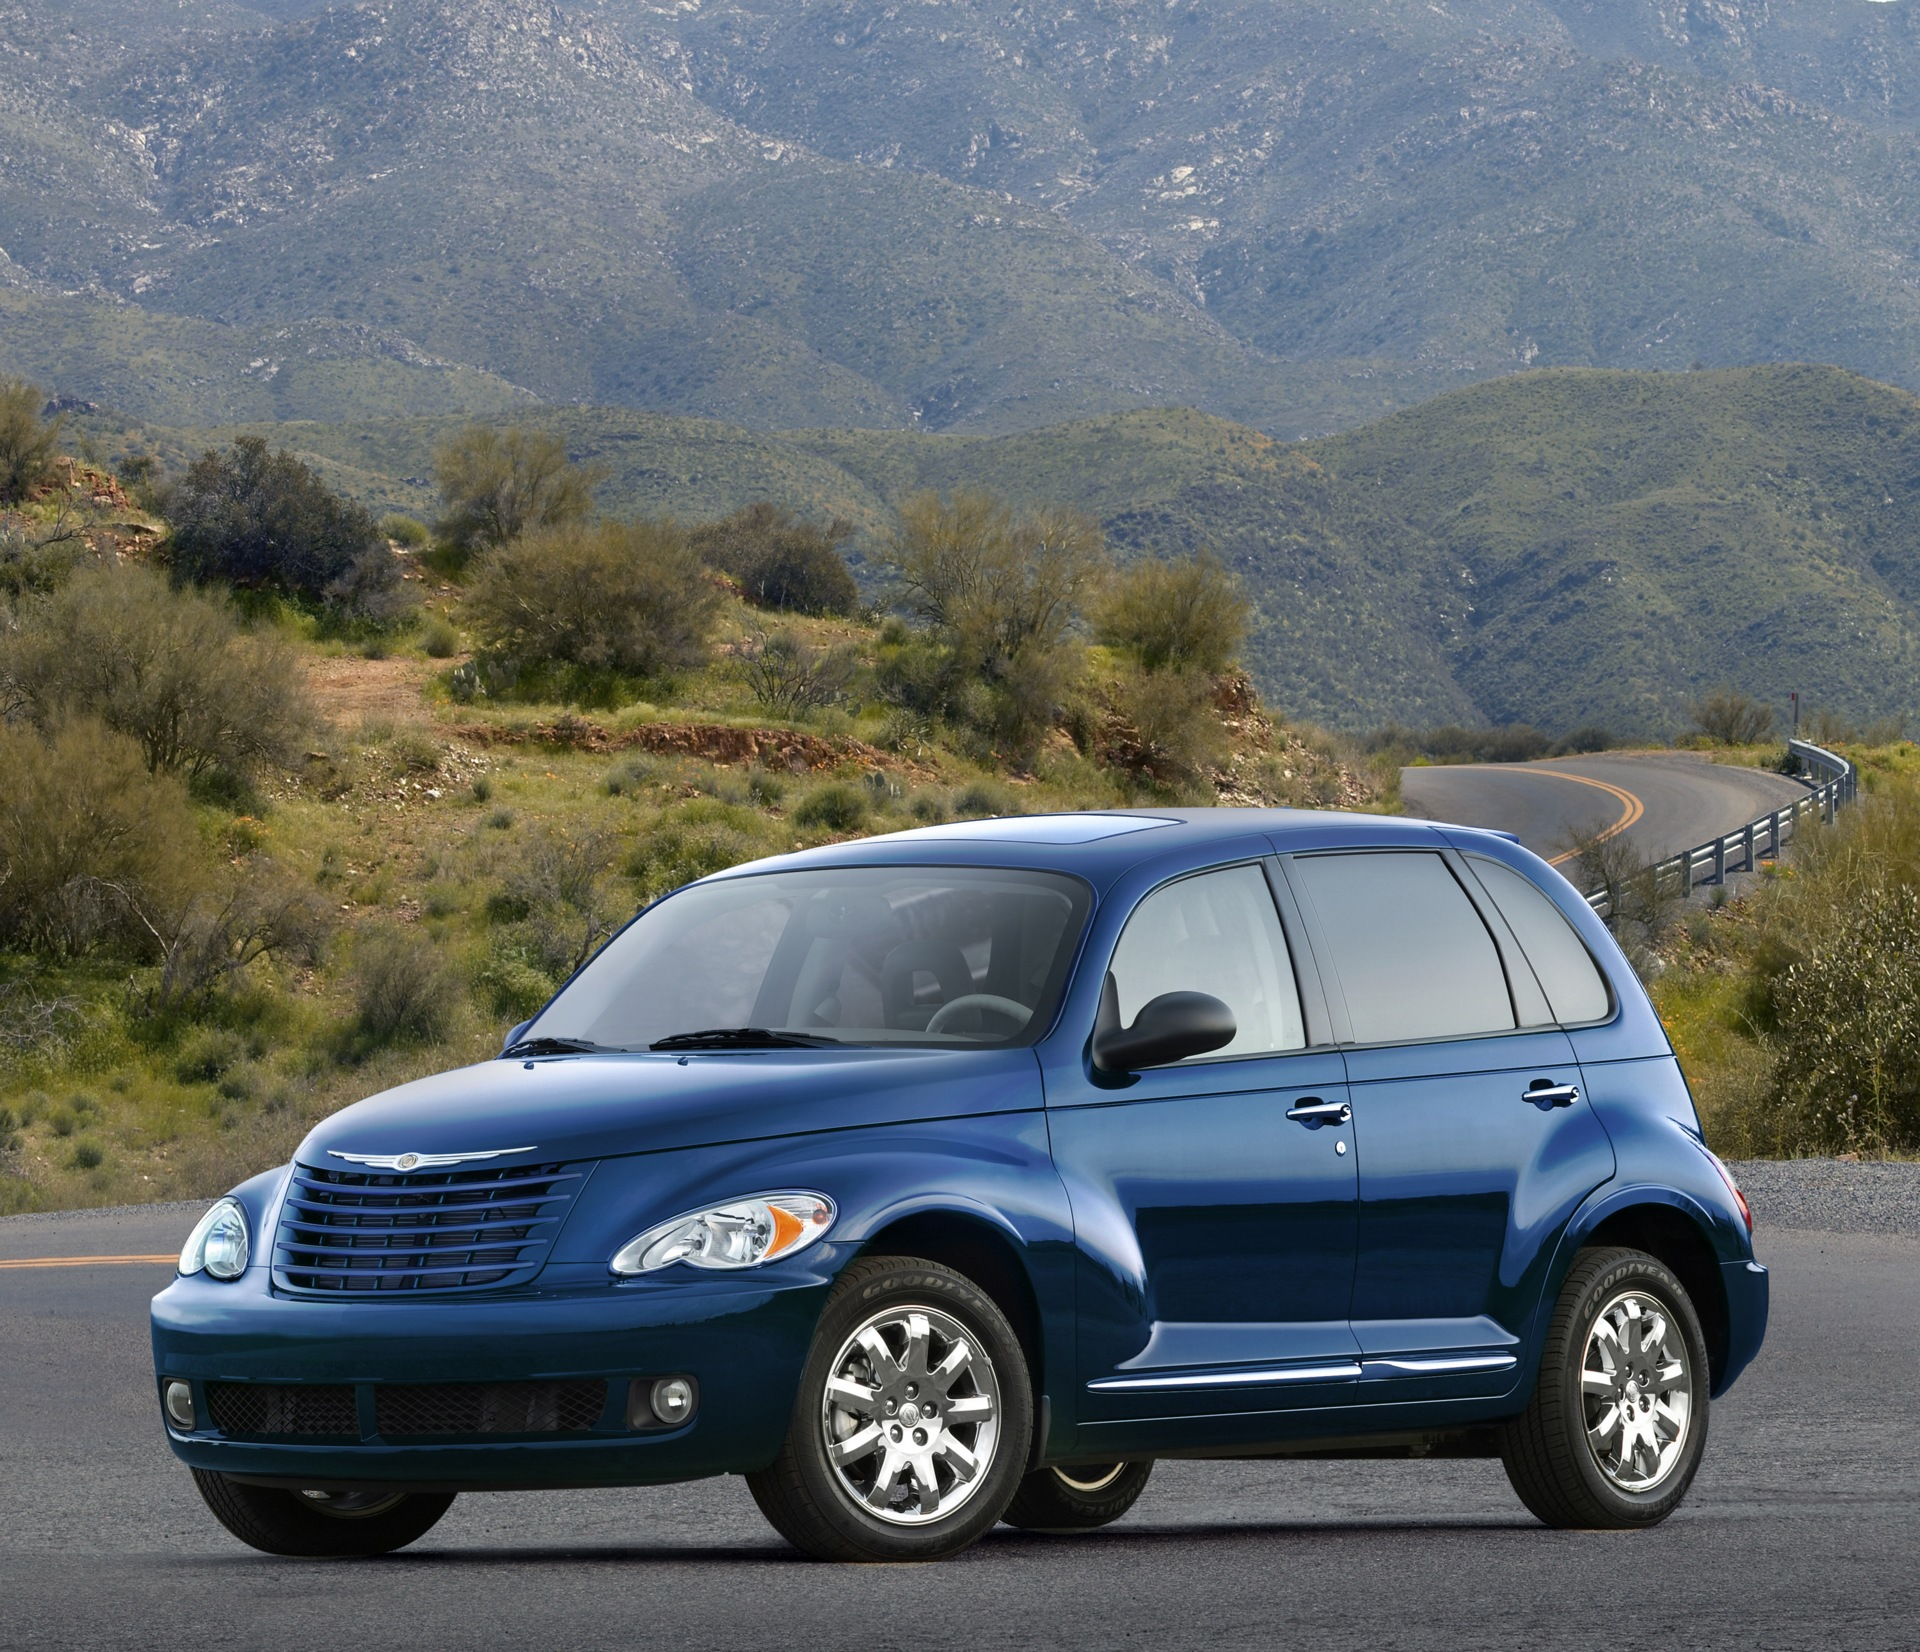 2008 chrysler pt cruiser. Black Bedroom Furniture Sets. Home Design Ideas